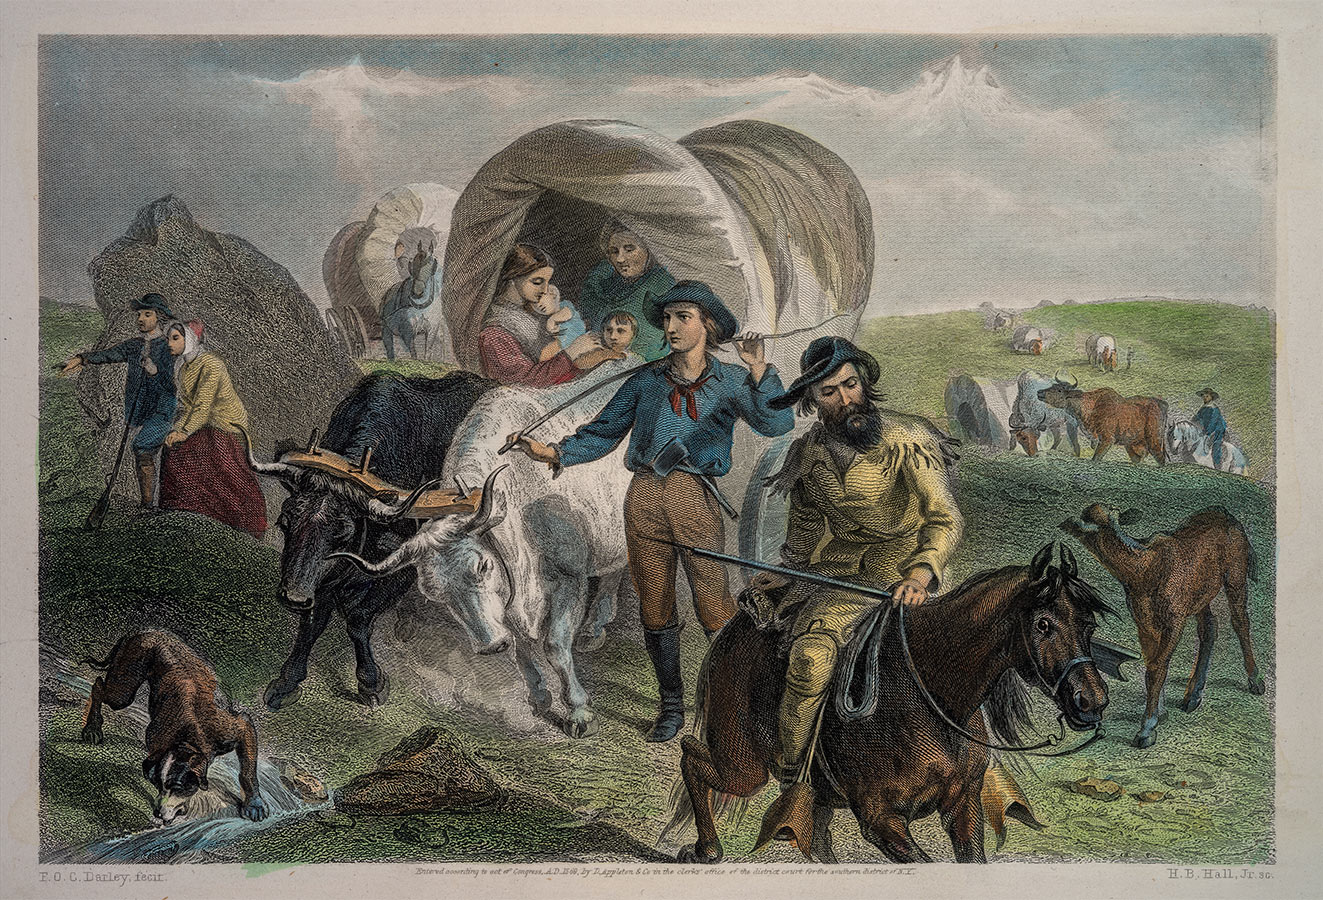 Imprinting The West Manifest Destiny Real And Imagined